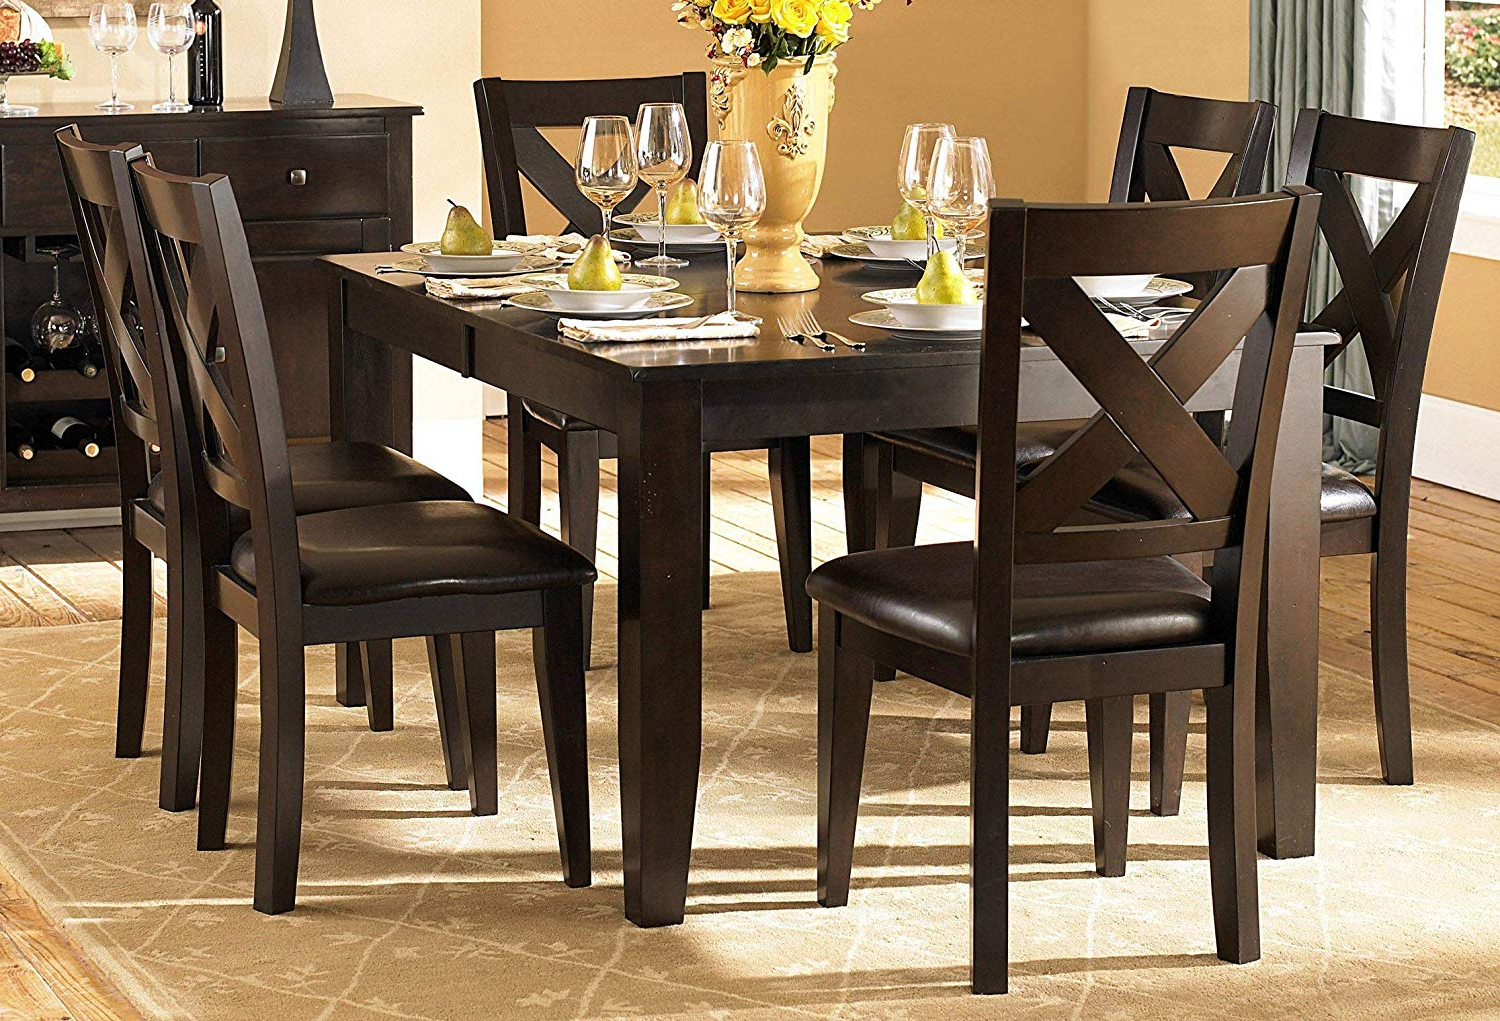 Artefac Contemporary Casual Dining Tables Throughout 2020 Amazon – Creekmore Casual Modern 8Pc Dining Set Table,  (View 10 of 25)